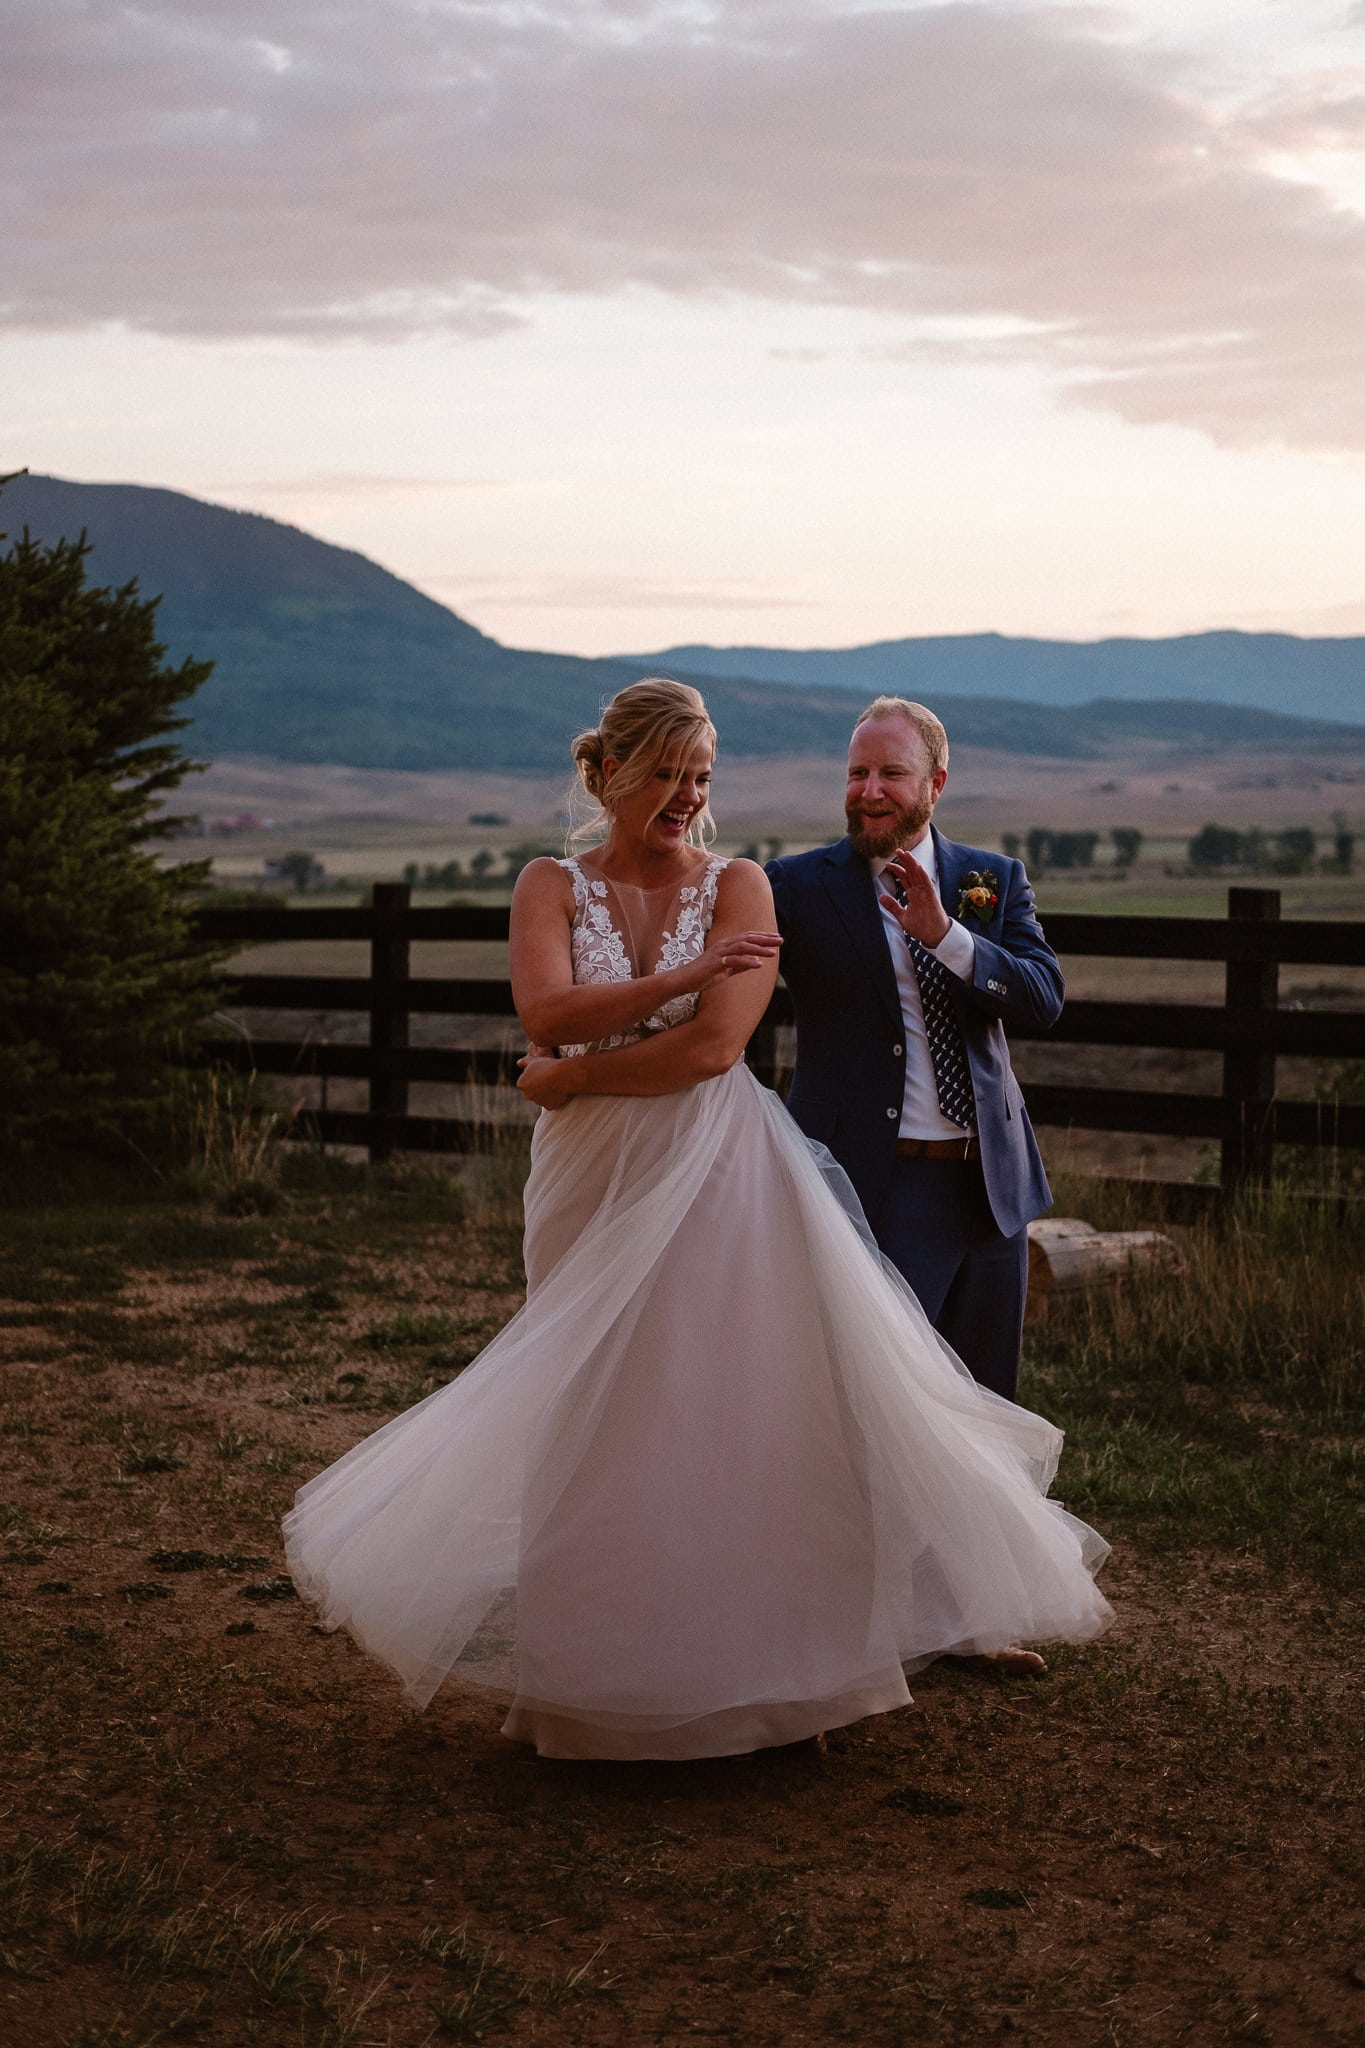 Steamboat Springs wedding photographer, La Joya Dulce wedding, Colorado ranch wedding venues, bride and groom portraits at sunset, bride and groom dancing